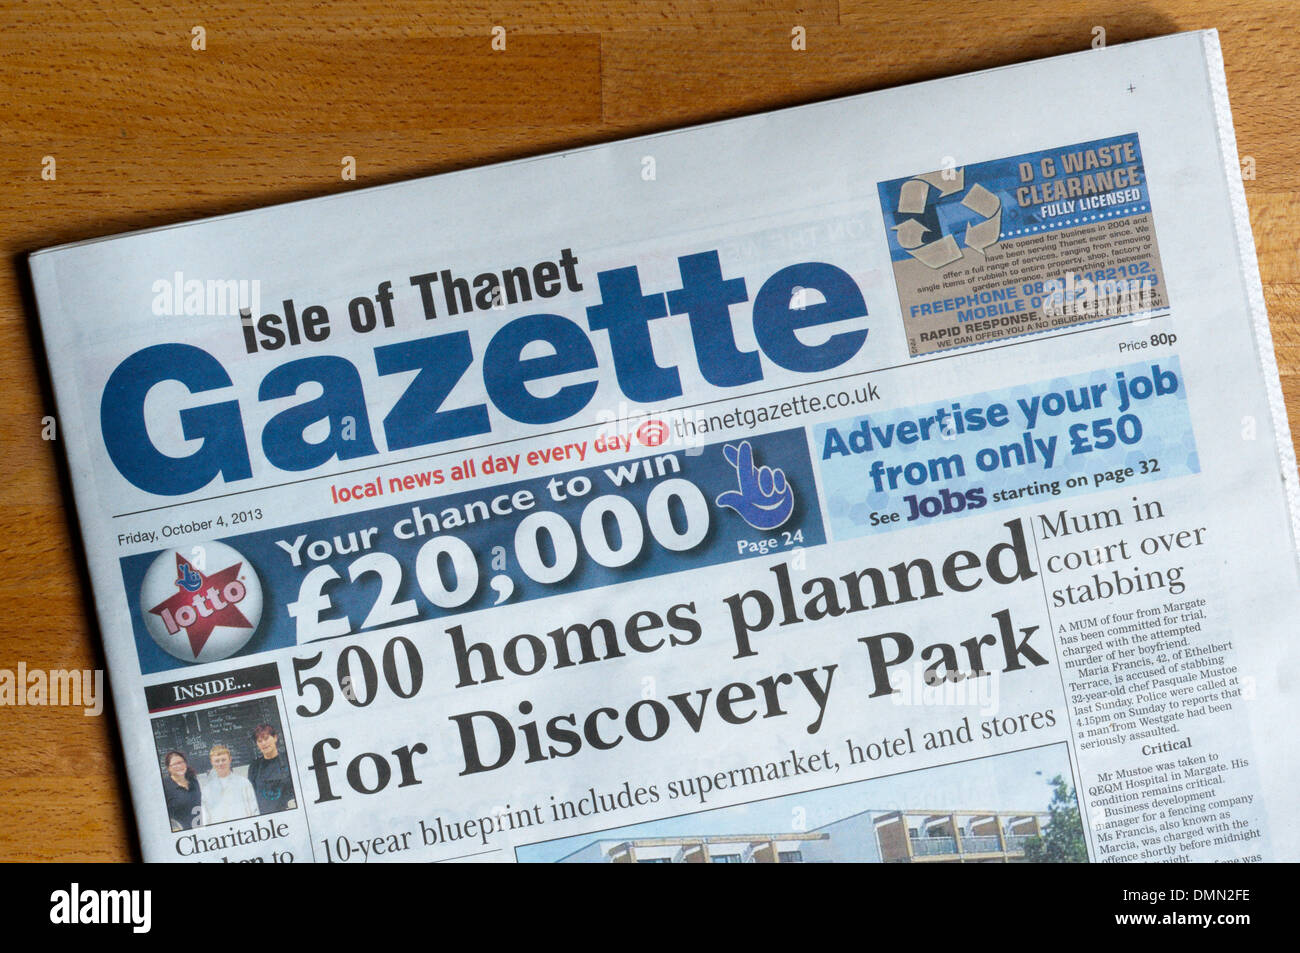 The front page of the Isle of Thanet Gazette local newspaper